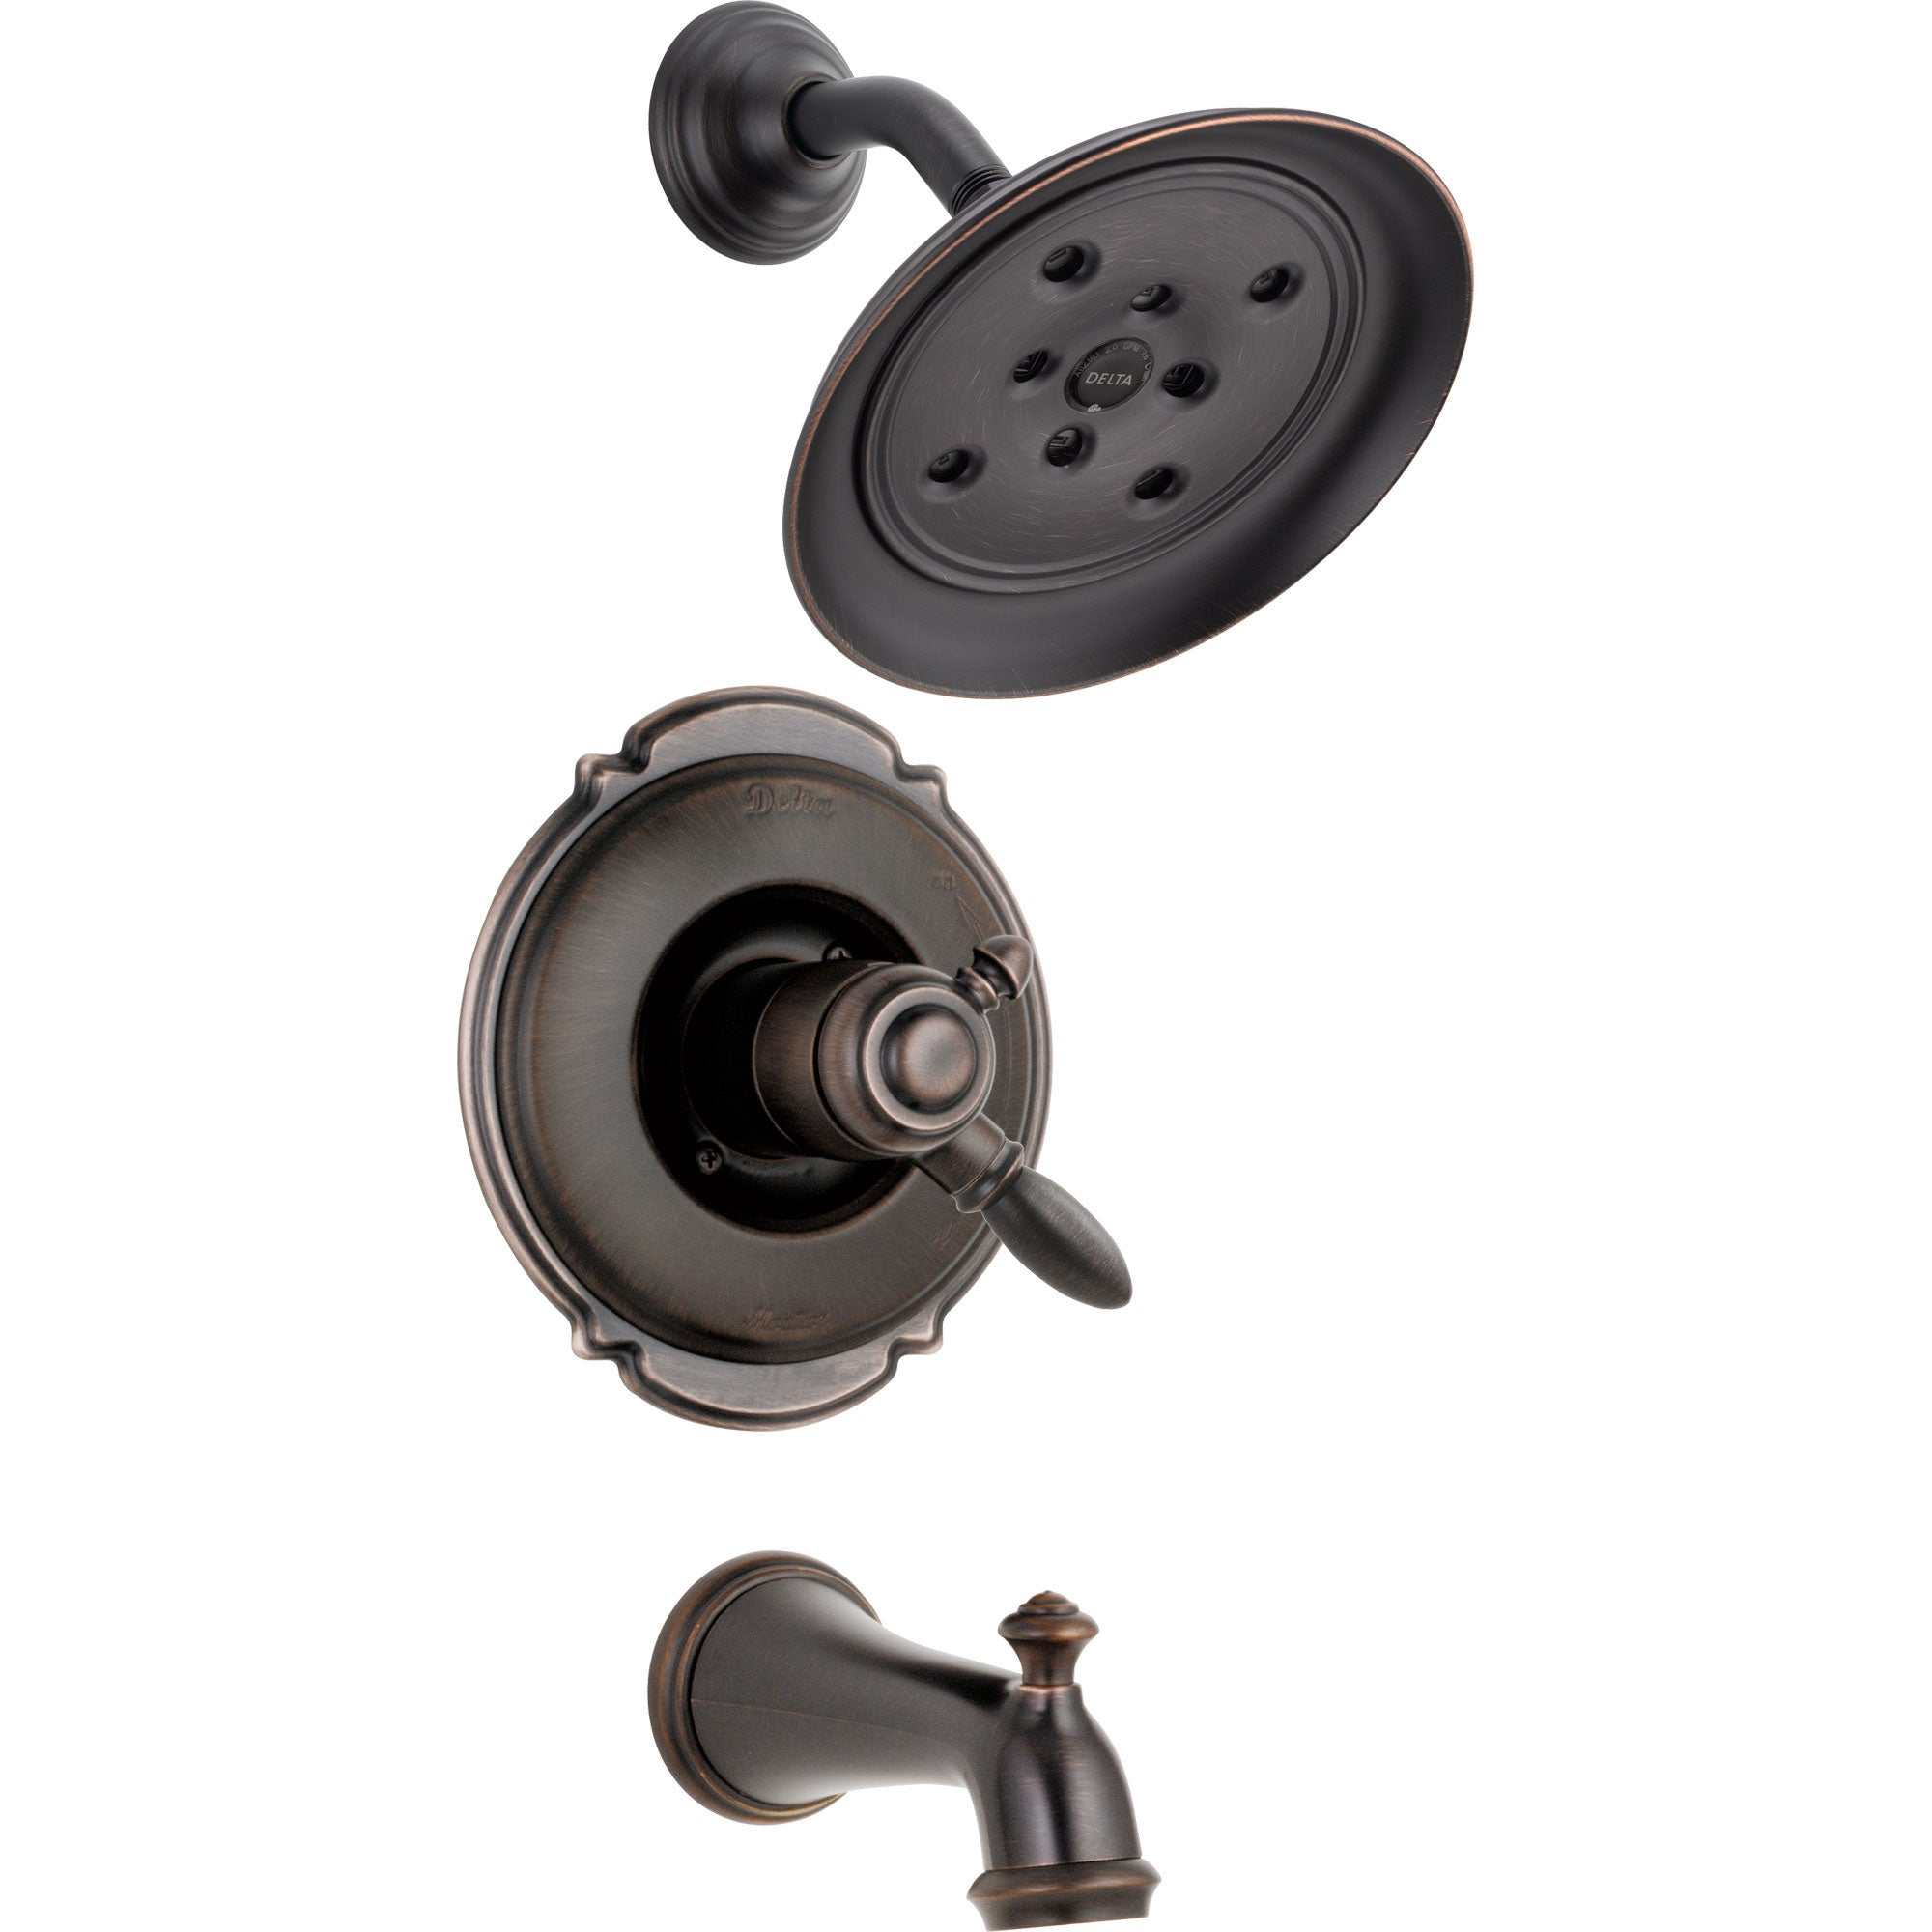 Delta Victorian Dual Control Venetian Bronze Tub and Shower Faucet Trim 556014